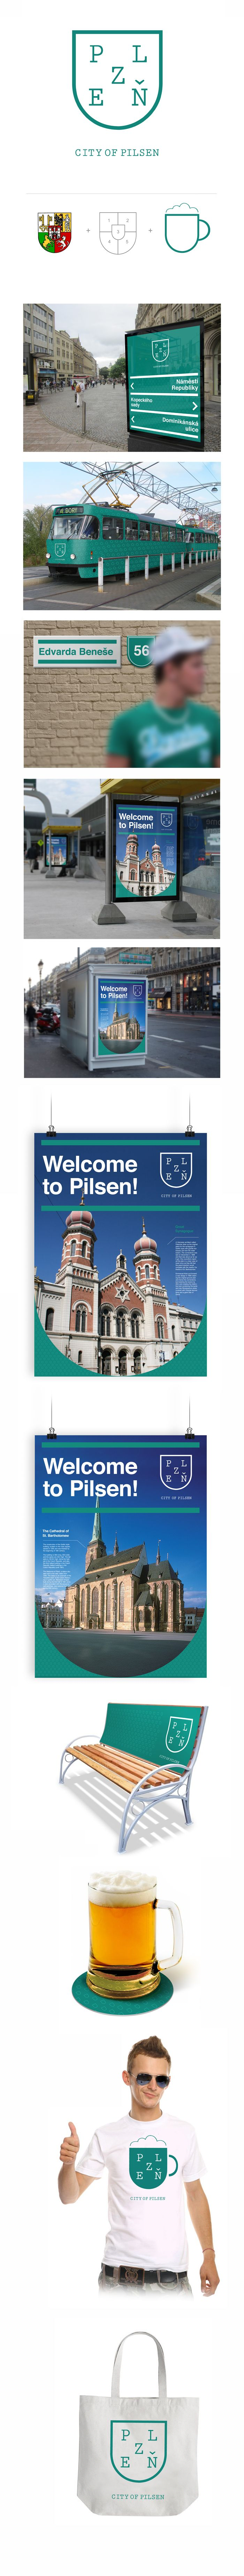 City of Pilsen identity